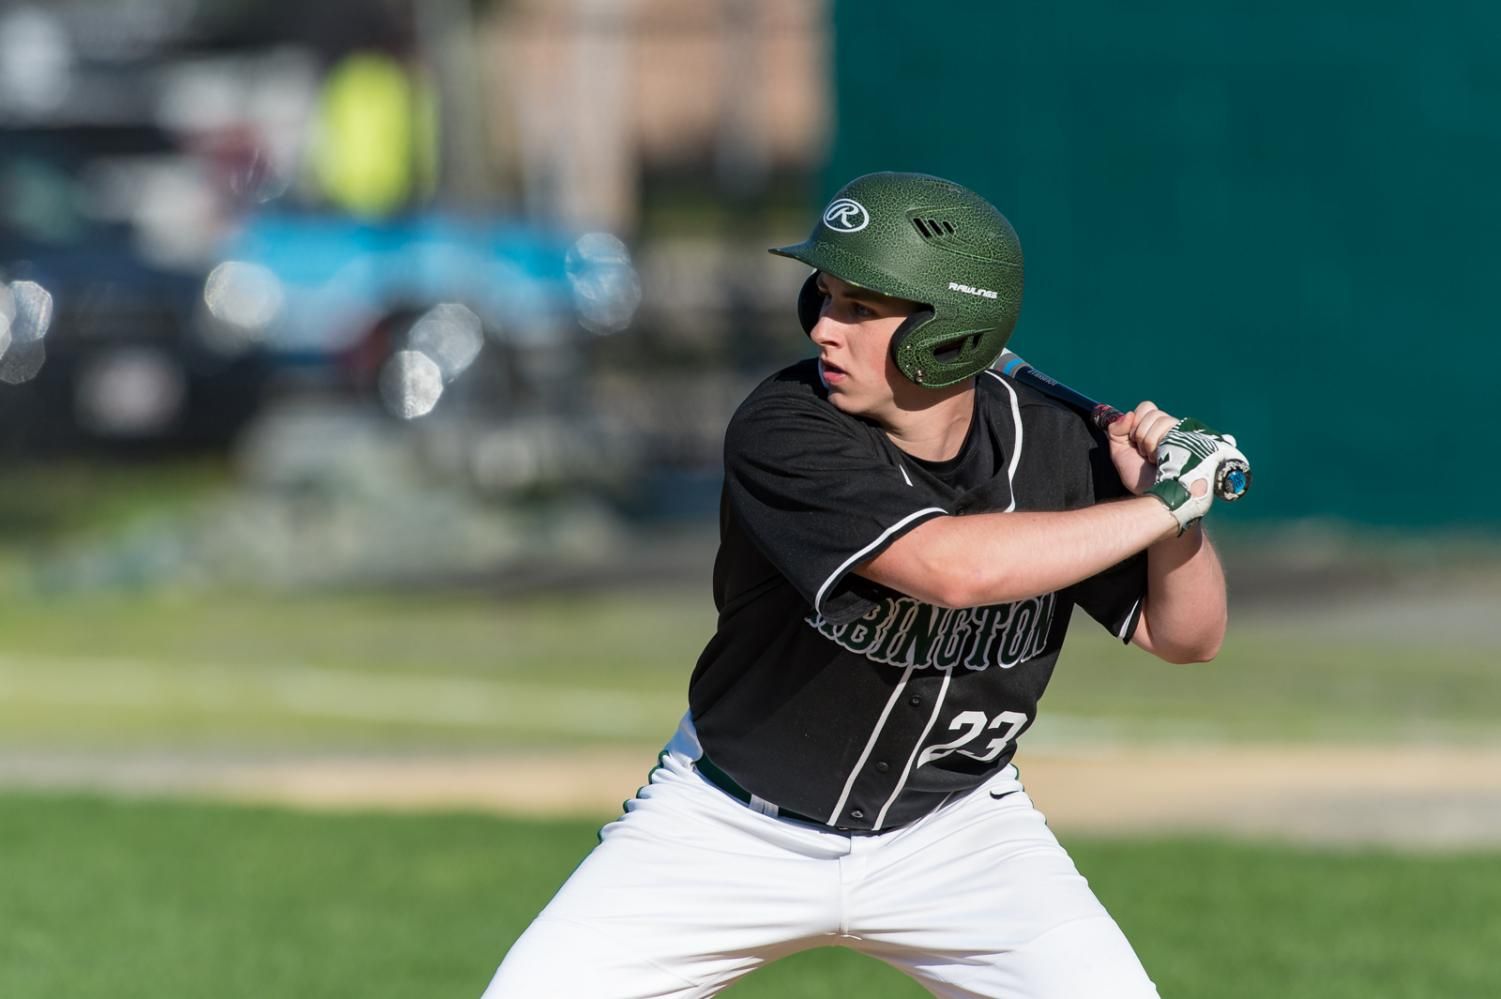 Abington High School senior Ryan Doherty, wearing 23, in a game against Cohasset during the 2018 season.